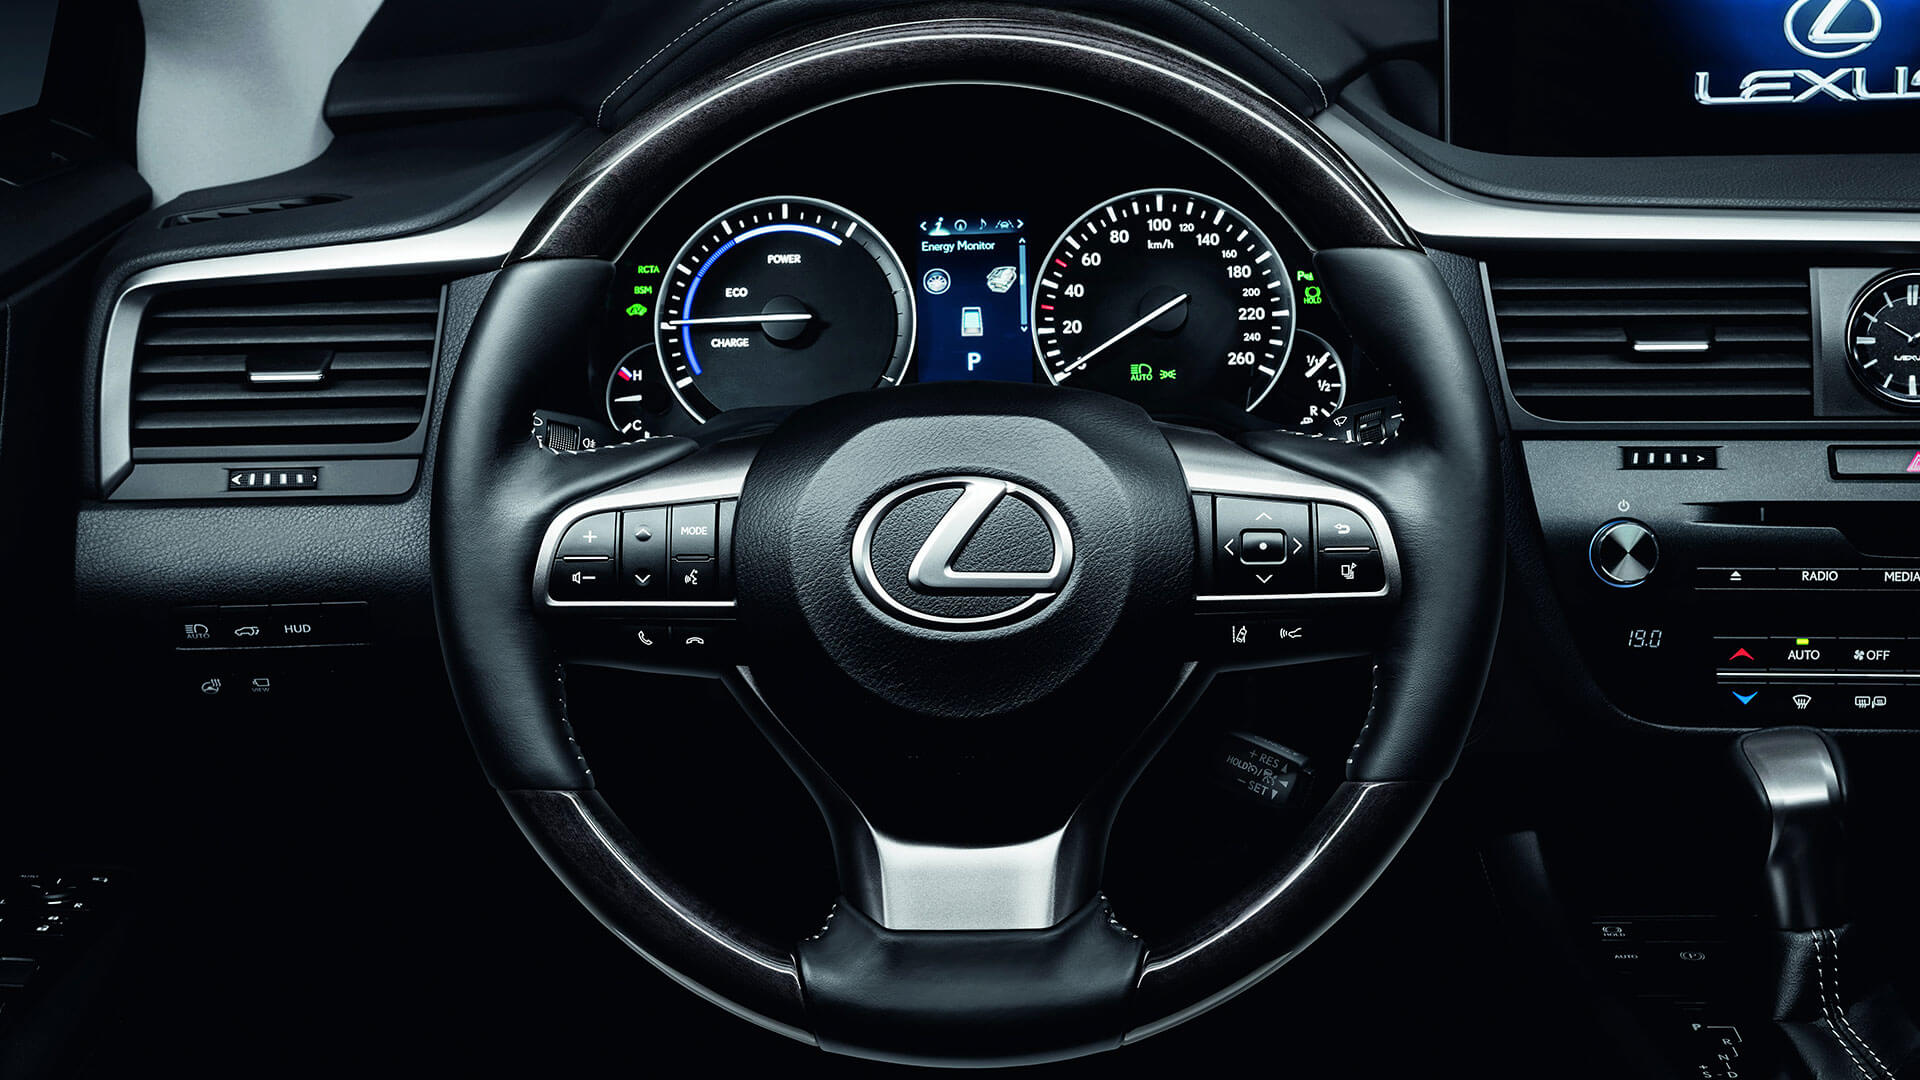 2017 lexus rx 450h features leather steering wheel